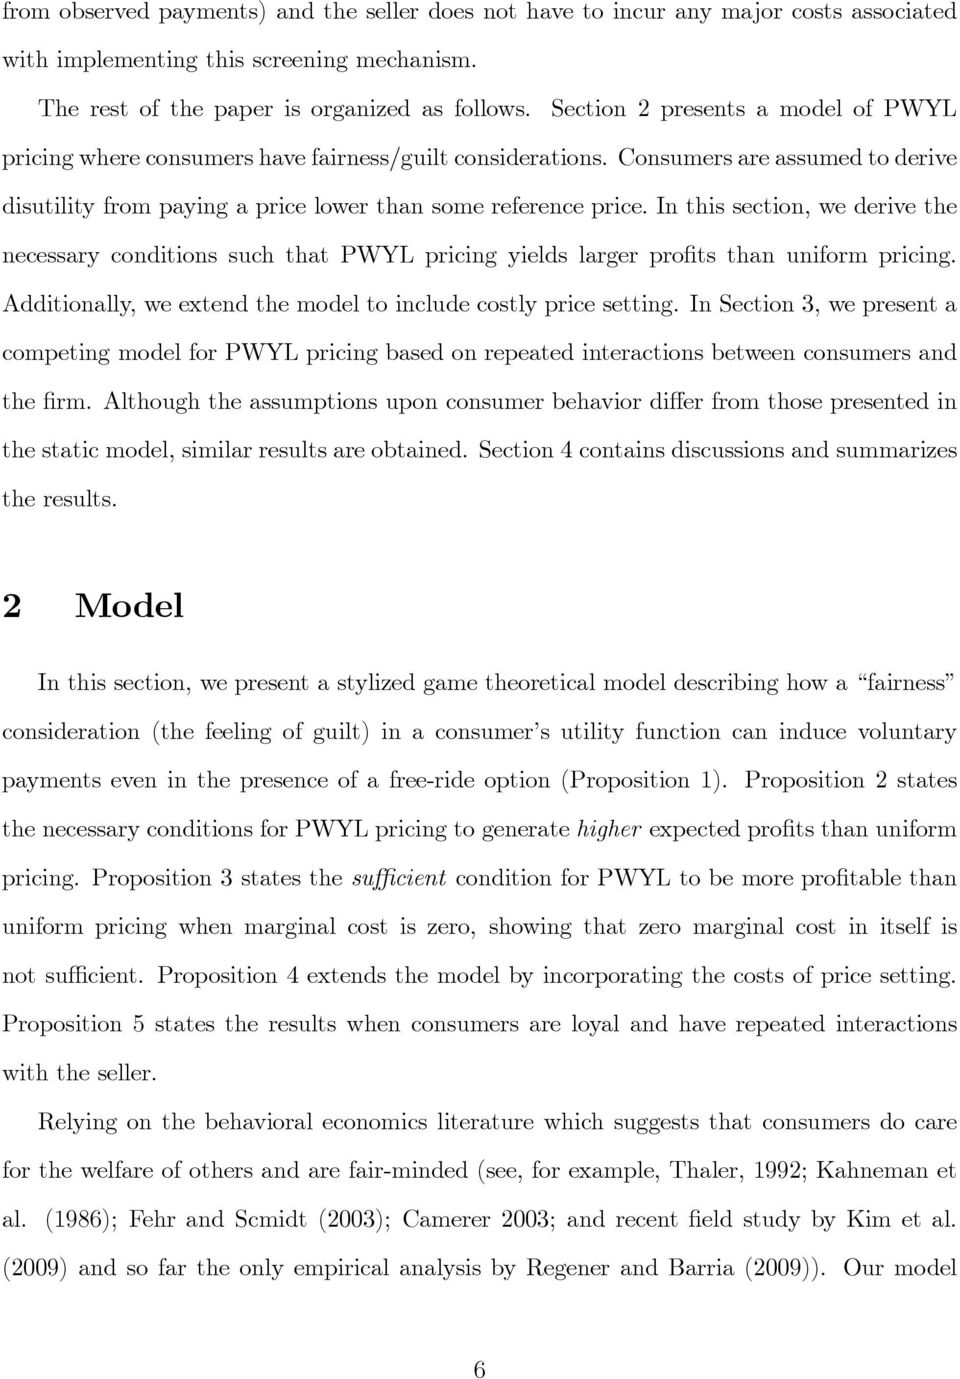 In this section, we derive the necessary conditions such that PWYL pricing yields larger profits than uniform pricing. Additionally, we extend the model to include costly price setting.